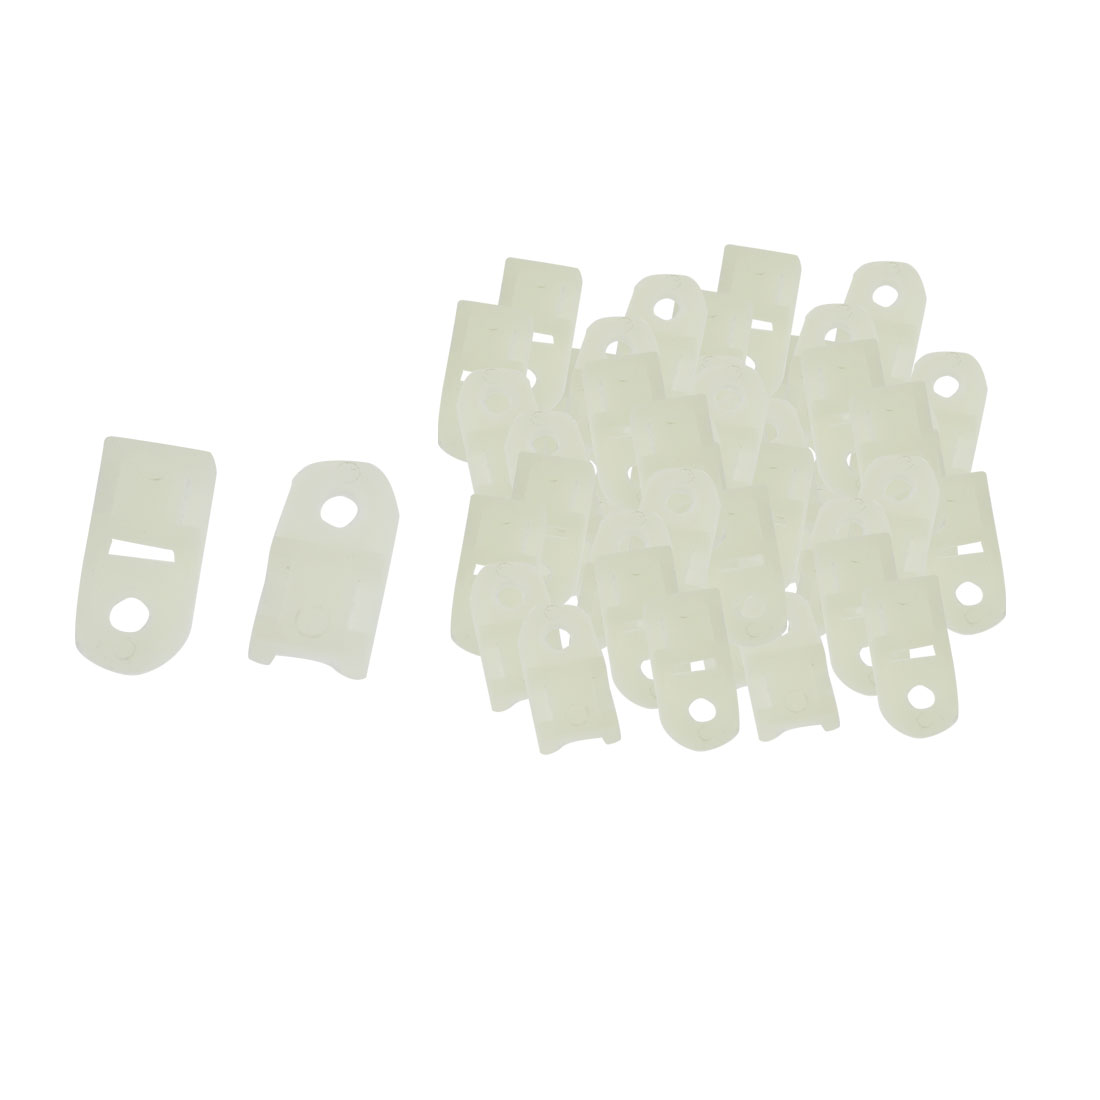 100-Pcs-Saddle-Type-5mm-Cable-Tie-Plastic-Mount-Plastic-White